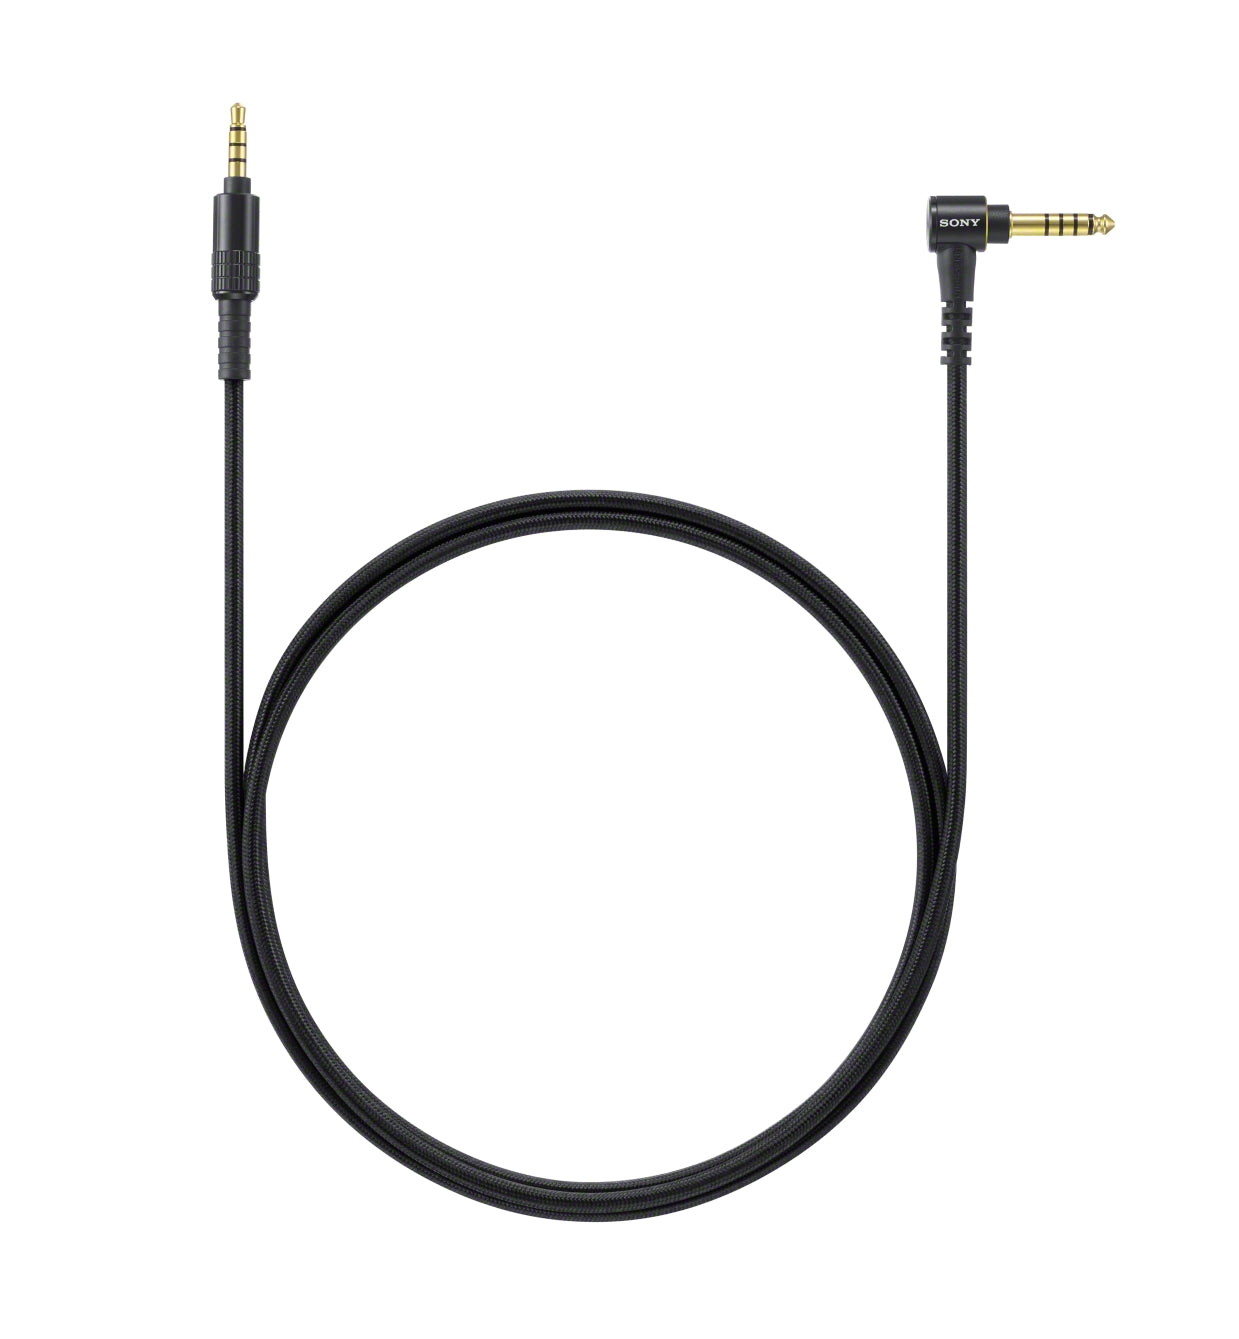 MUC-S12NB1 (4 Pole 3.5mm to 4.4mm Balanced) - Jaben - The Little Headphone Store